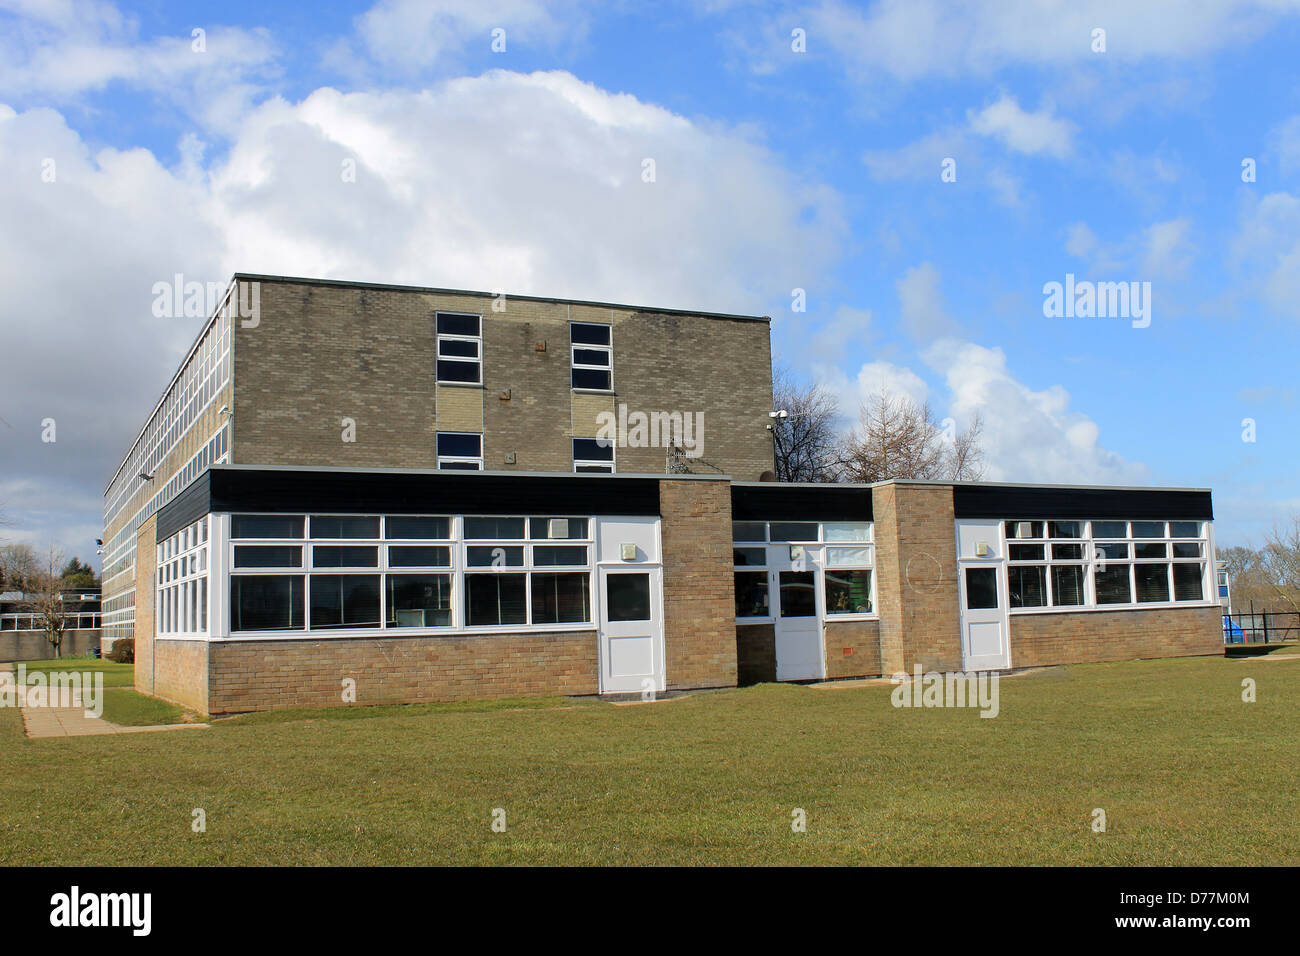 Exterior of secondary comprehensive school with blue sky and cloudscape background. - Stock Image